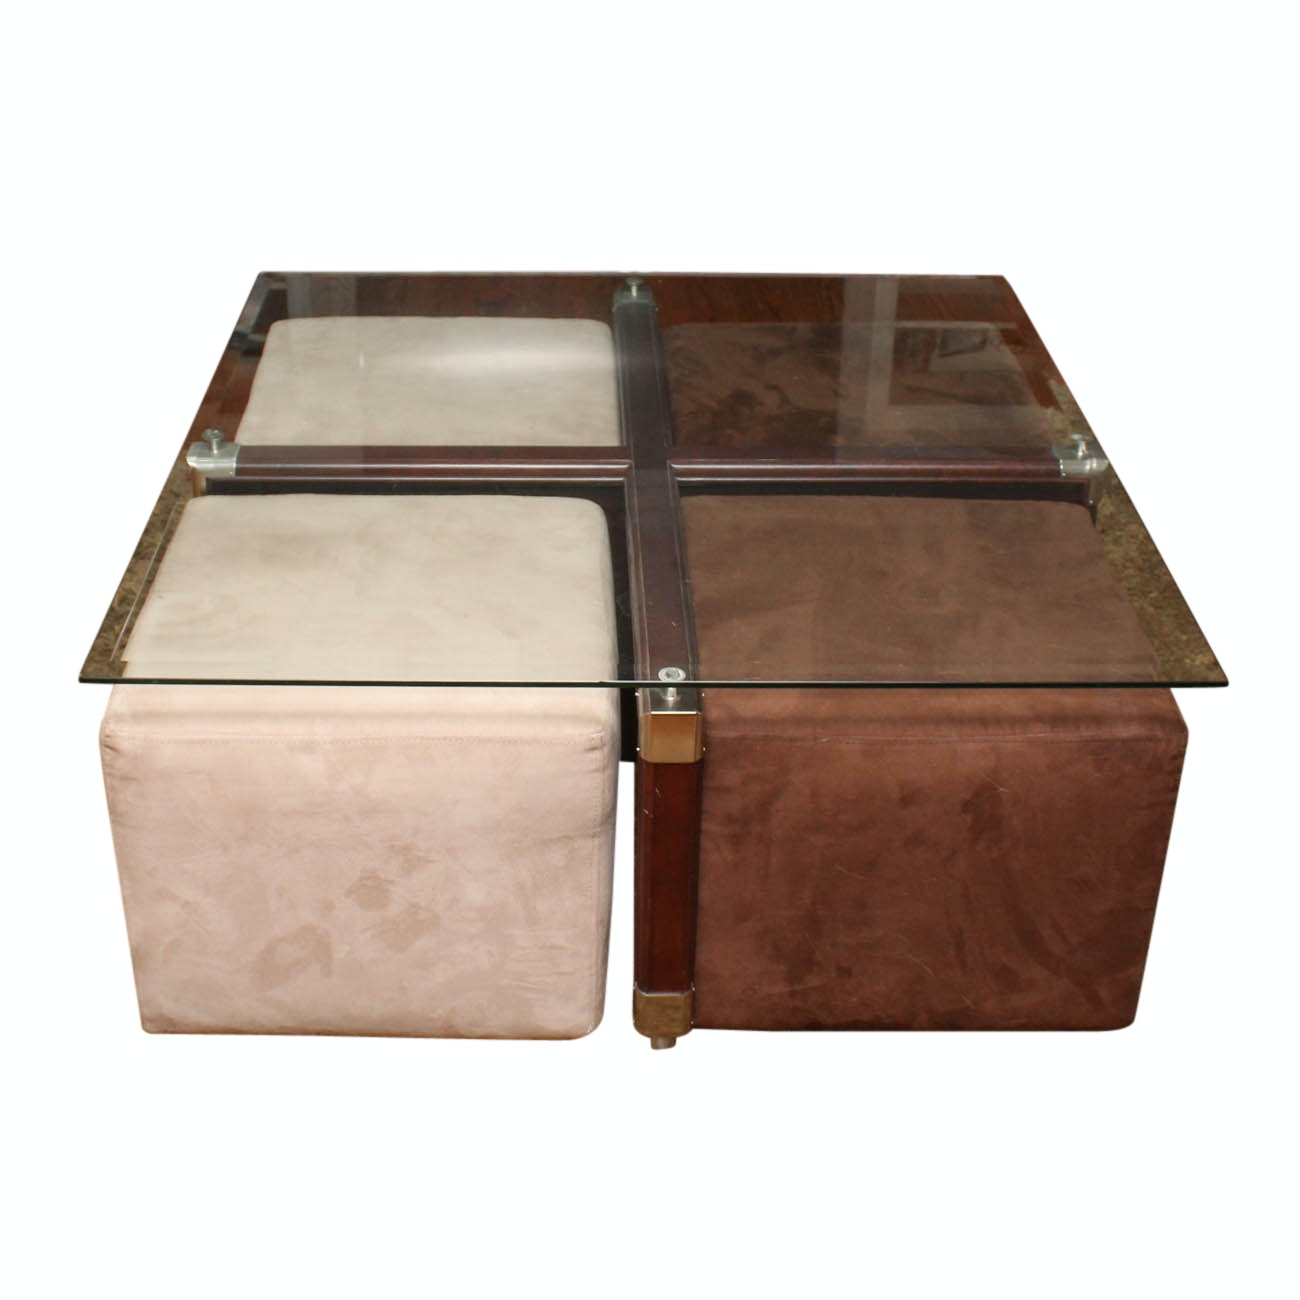 Sofa Express Glass Coffee Table with Stools